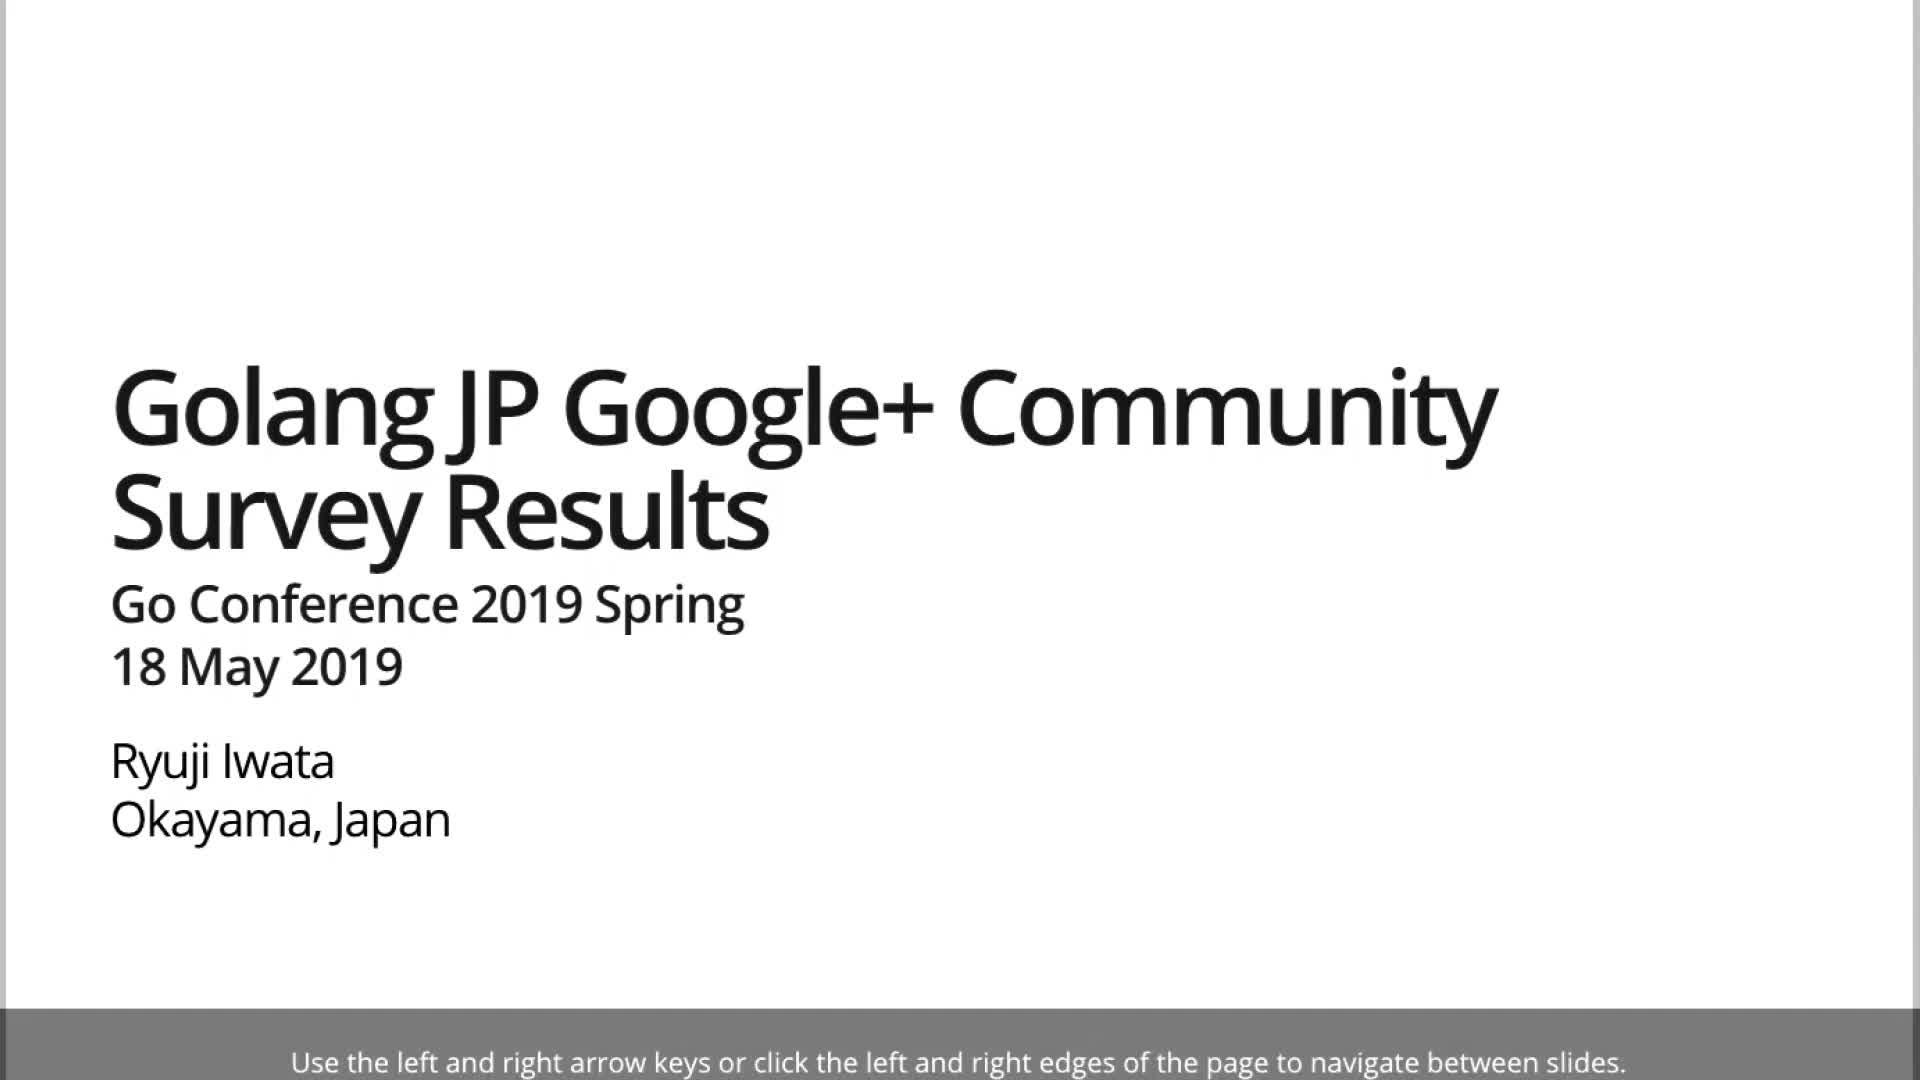 GolangJP Google+ Community Survey Results